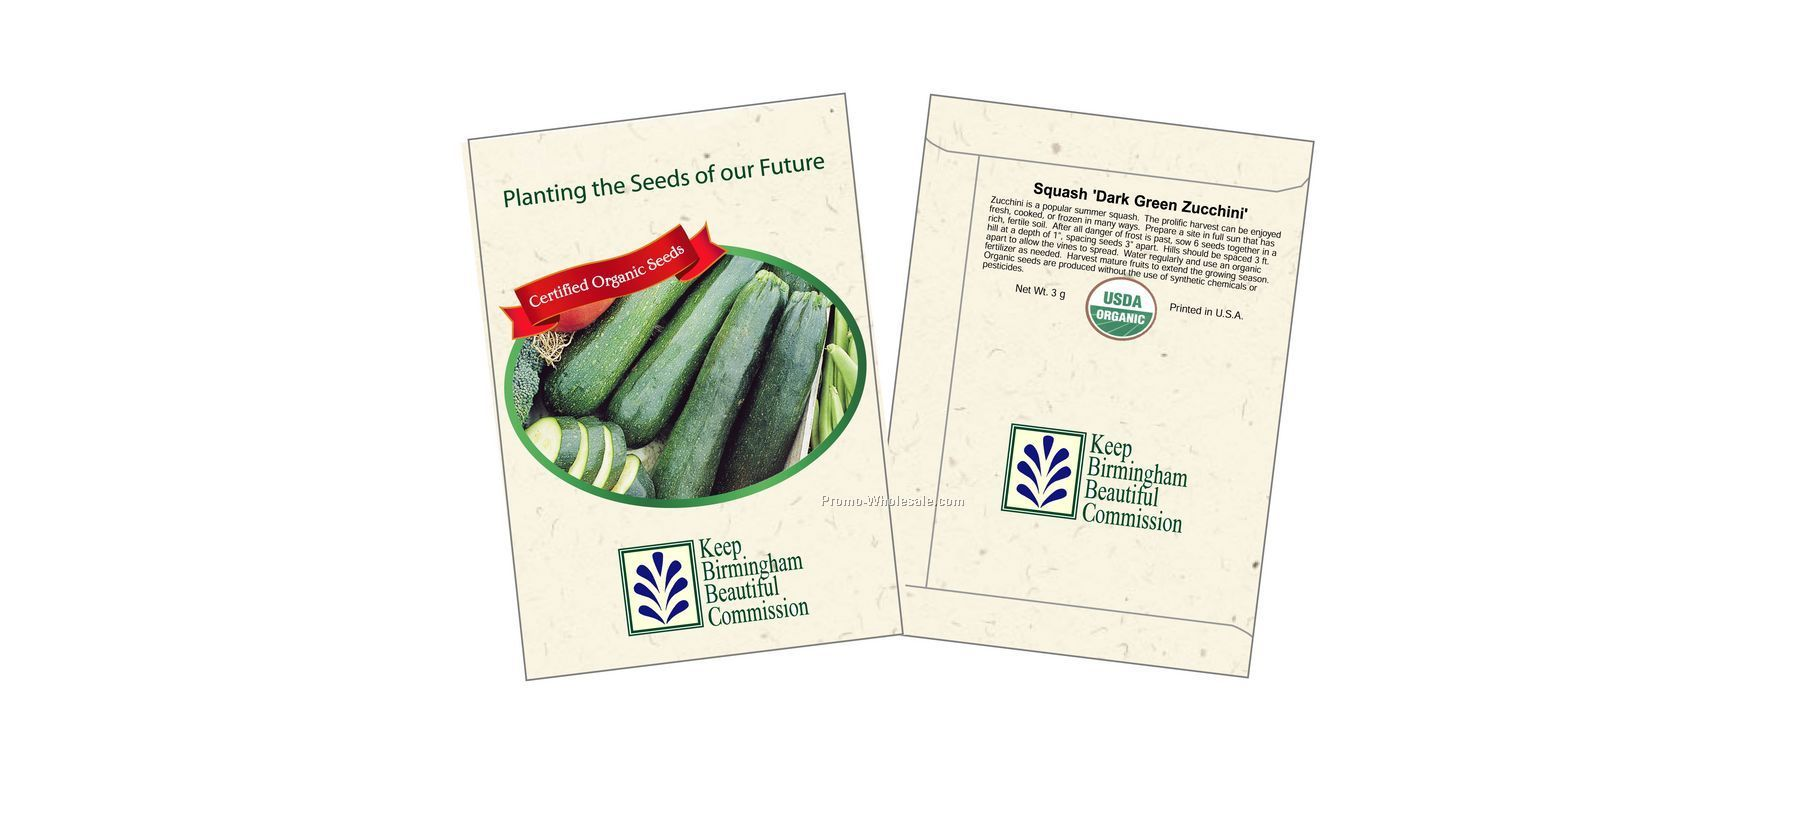 "3-1/4""x4-1/2"" Organic Squash - Dark Green Zucchini - Seed Packets (1 Color)"